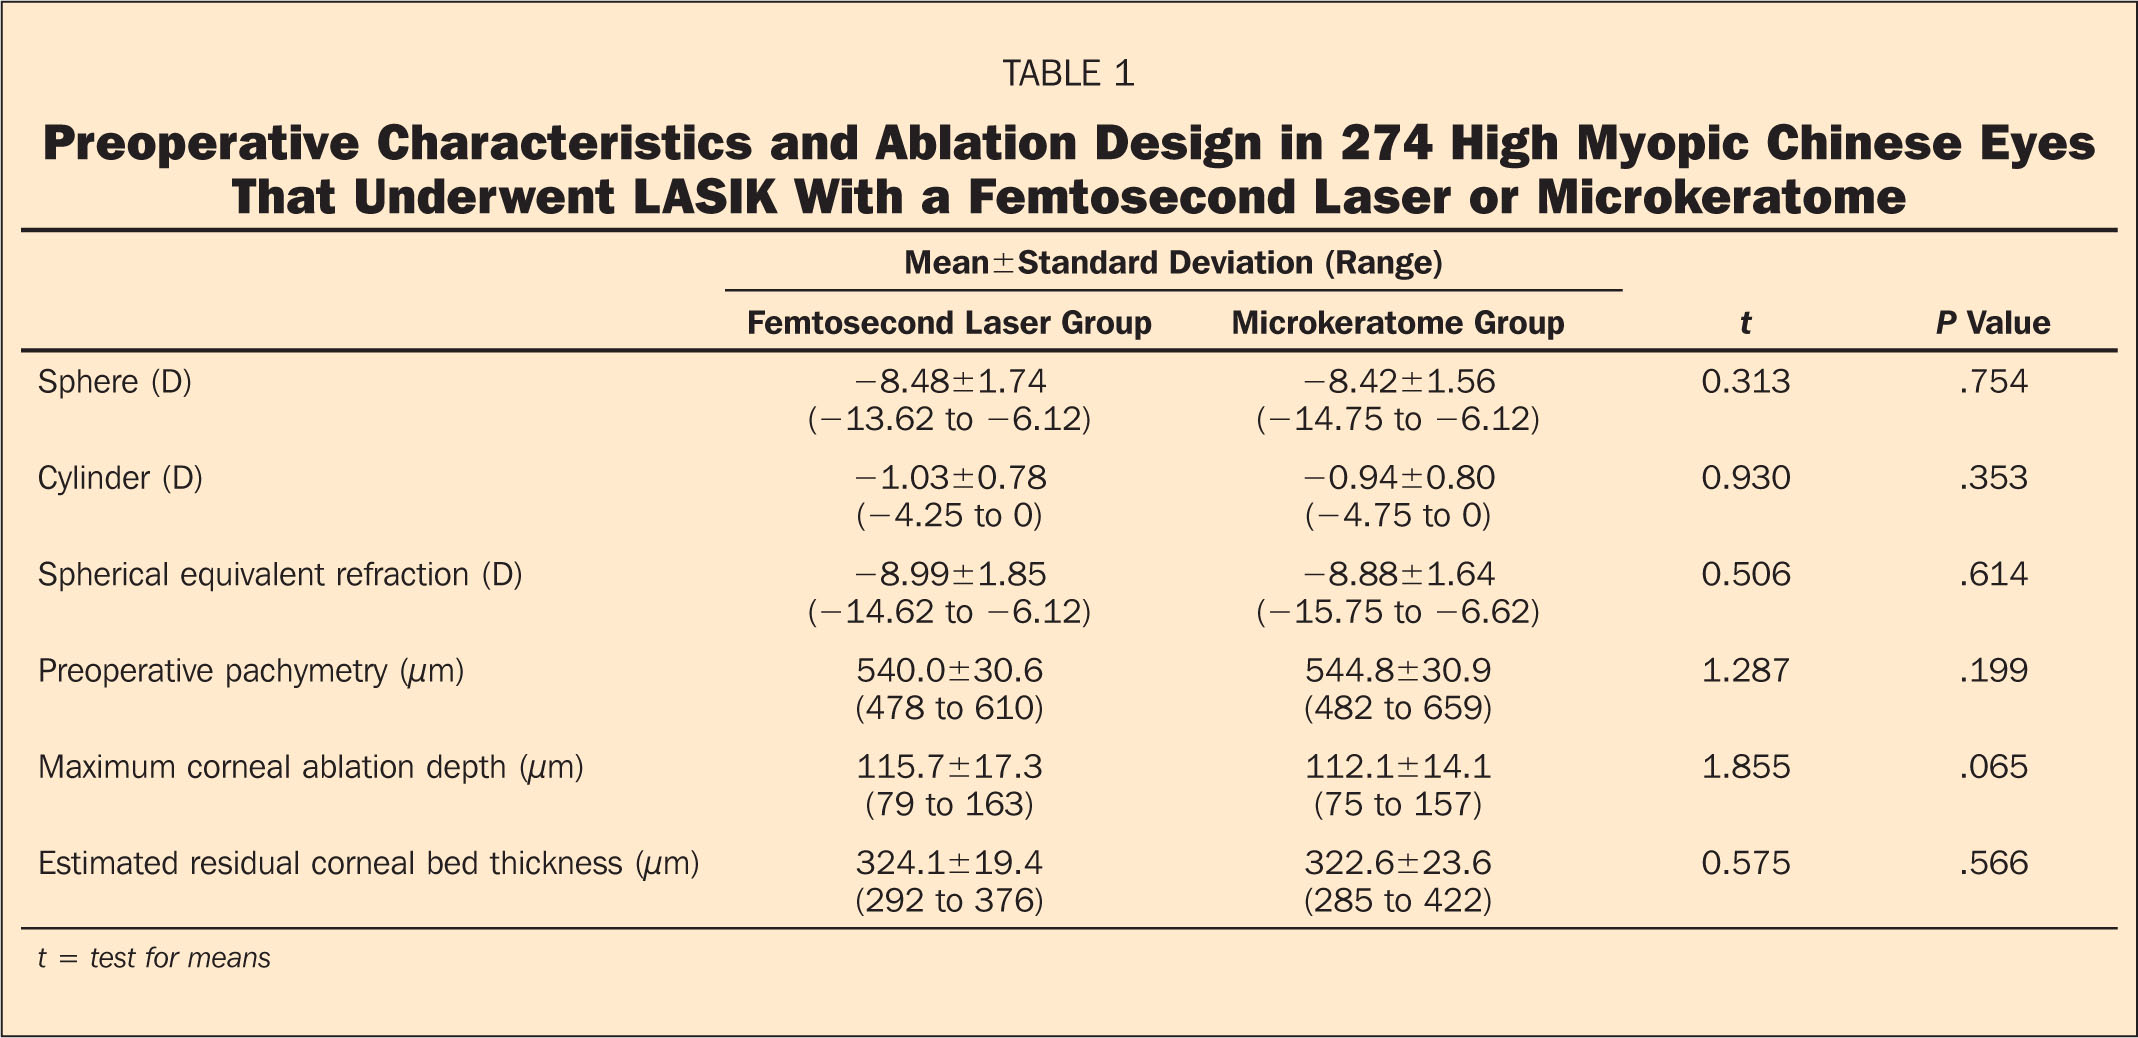 Preoperative Characteristics and Ablation Design in 274 High Myopic Chinese Eyes that Underwent LASIK with a Femtosecond Laser or Microkeratome